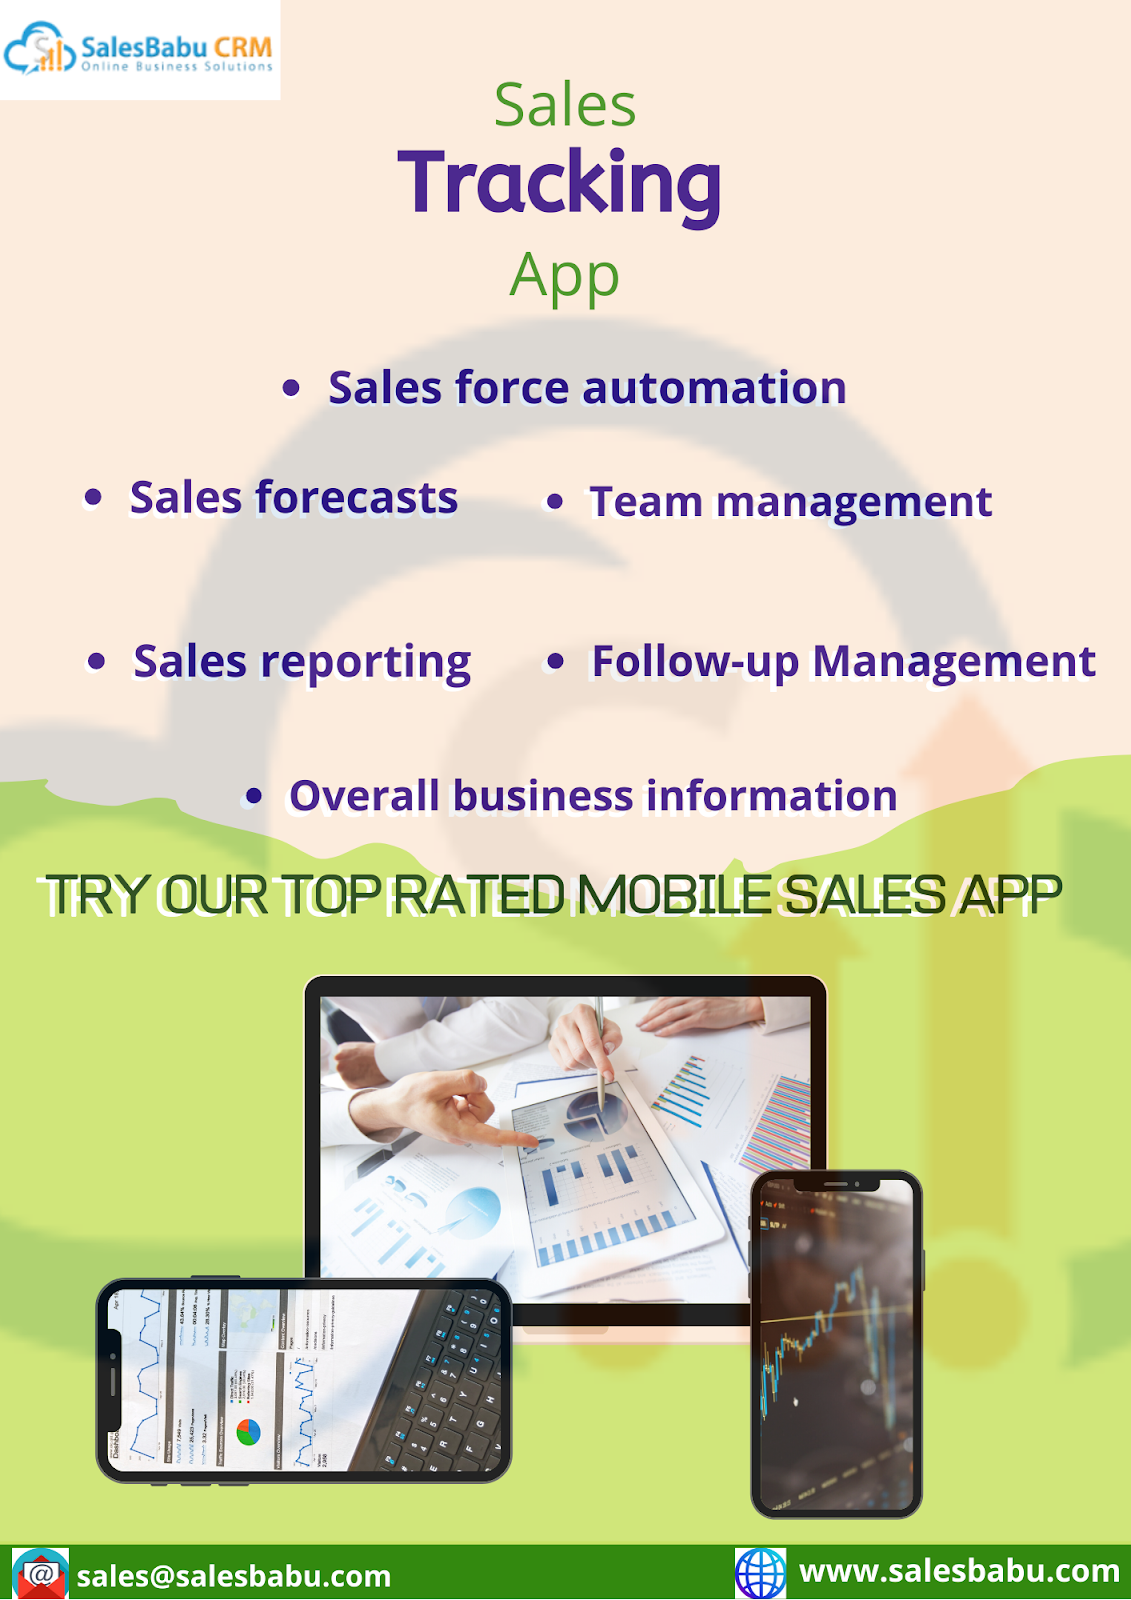 Sales Tracking App Features